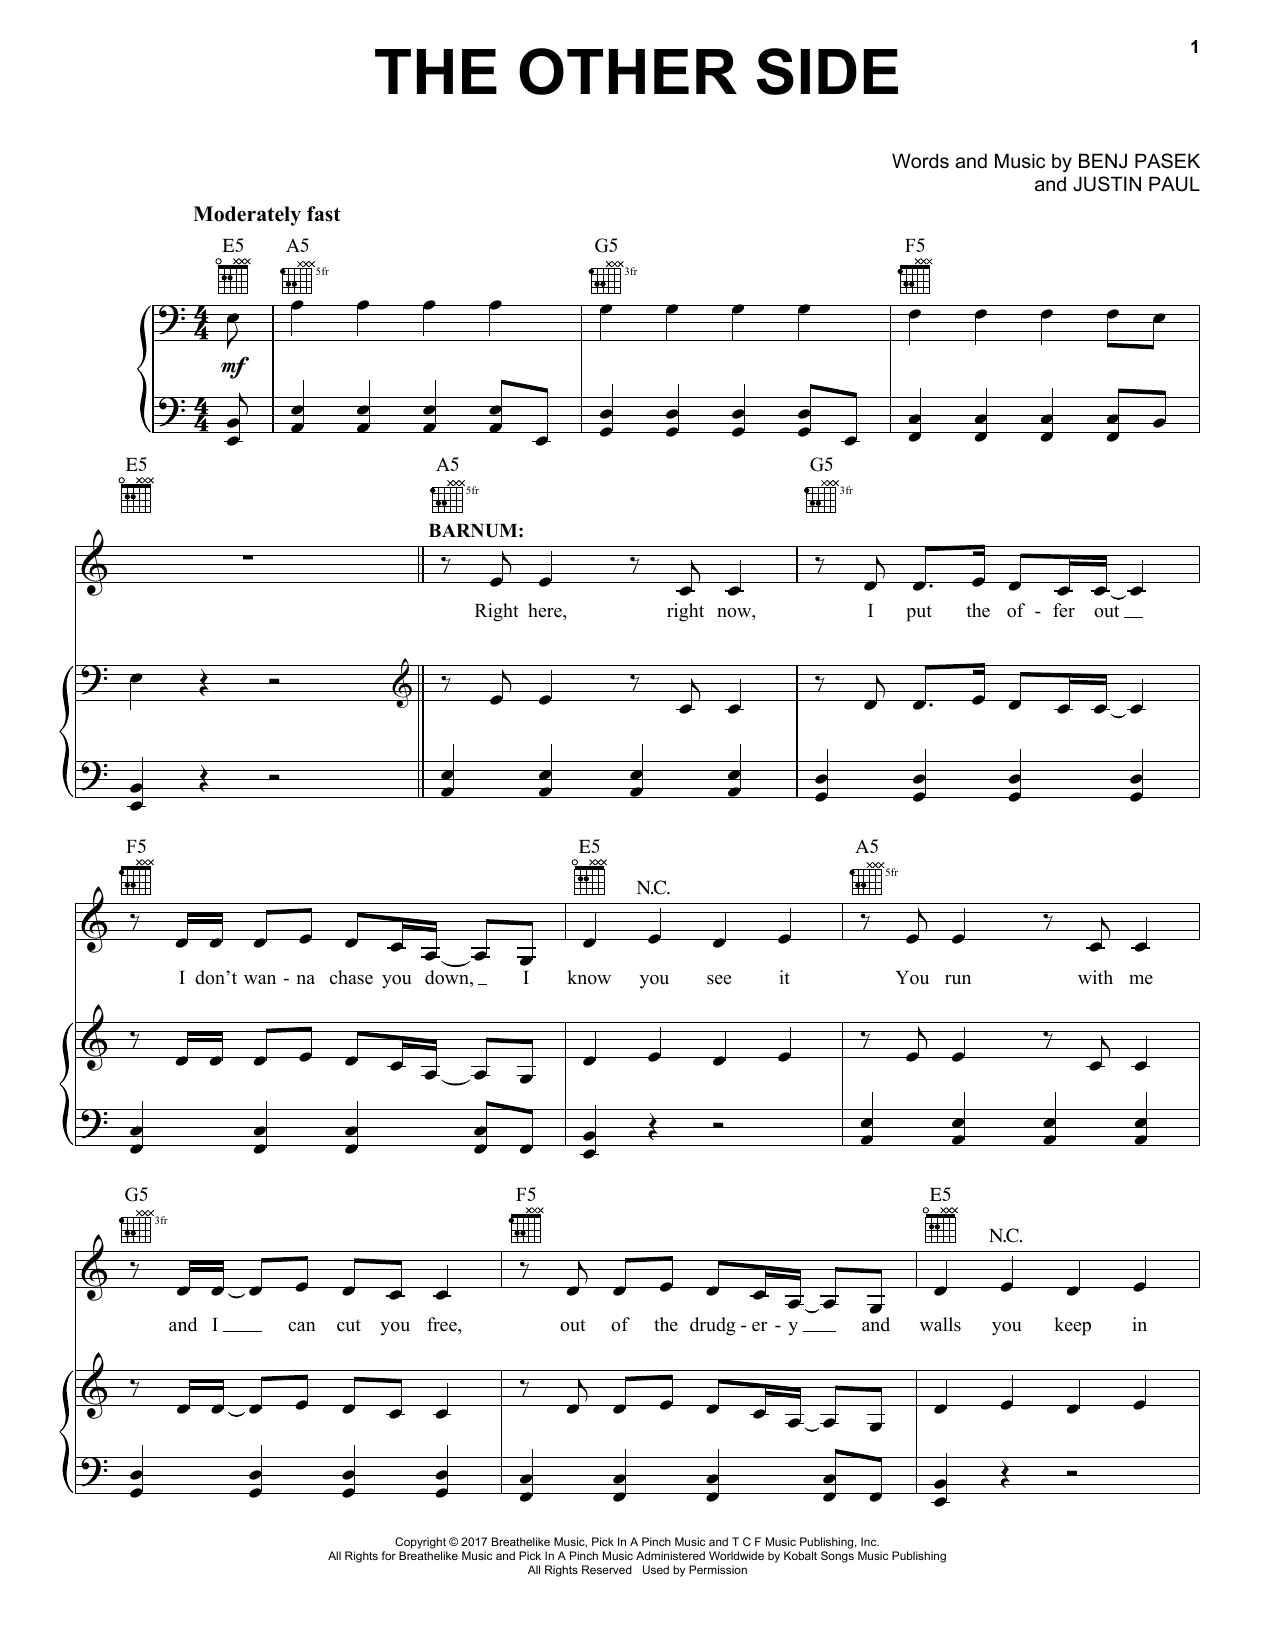 Pasek & Paul The Other Side (from The Greatest Showman) sheet music notes and chords